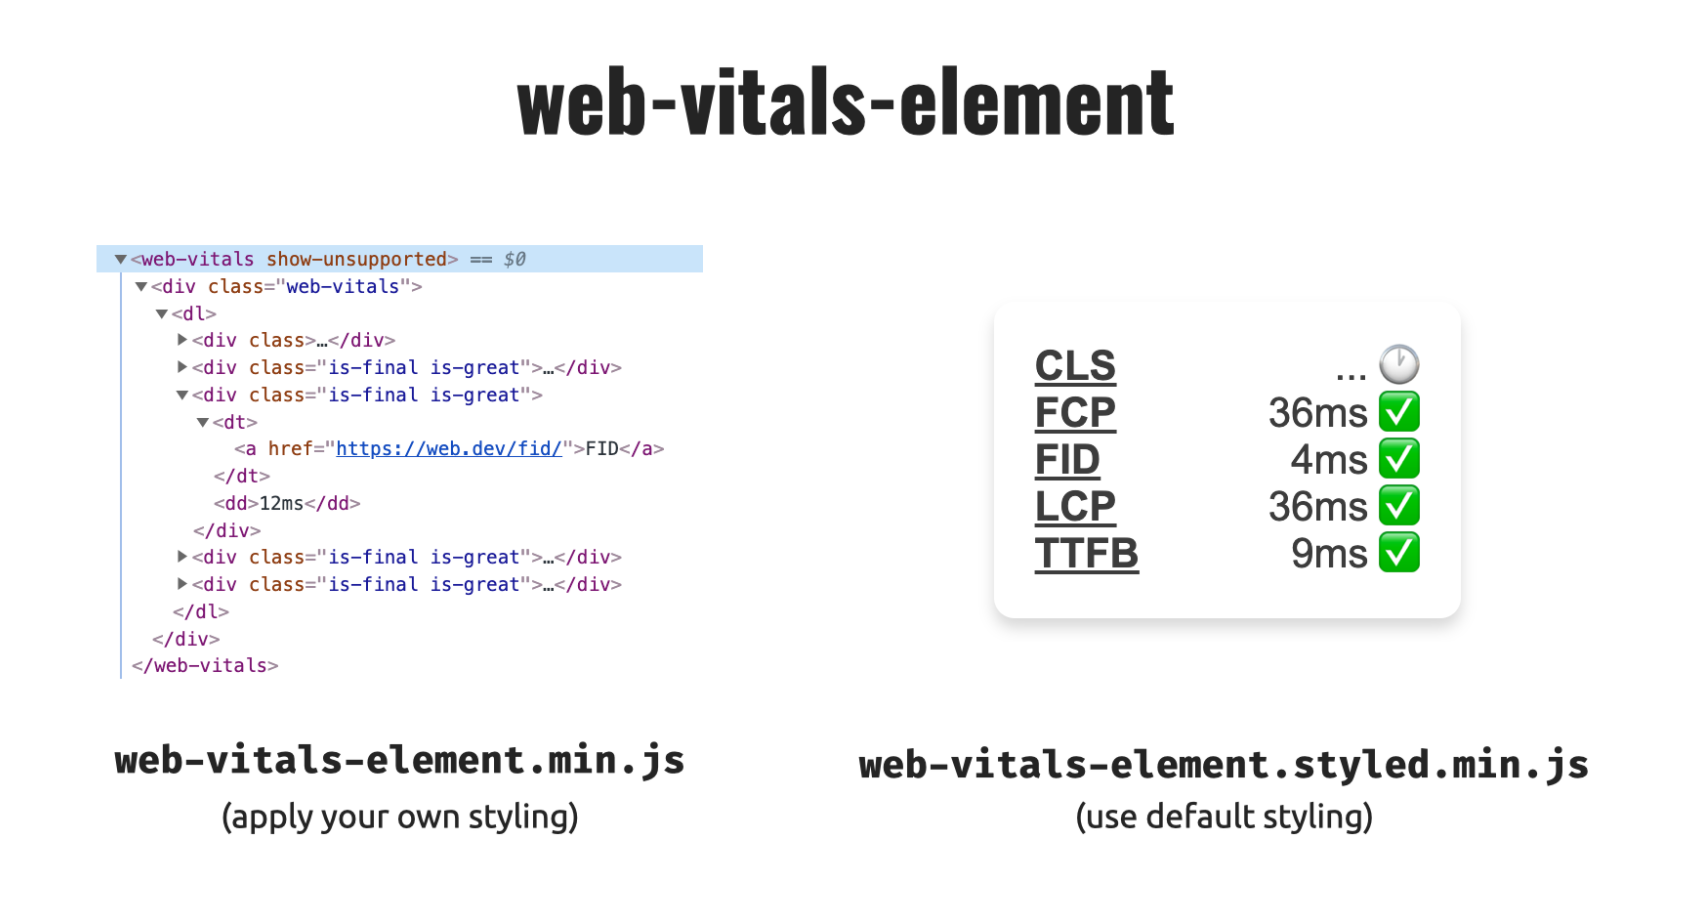 Web-vitals-element example showing an unstyled and a styled version depending on what file is loaded